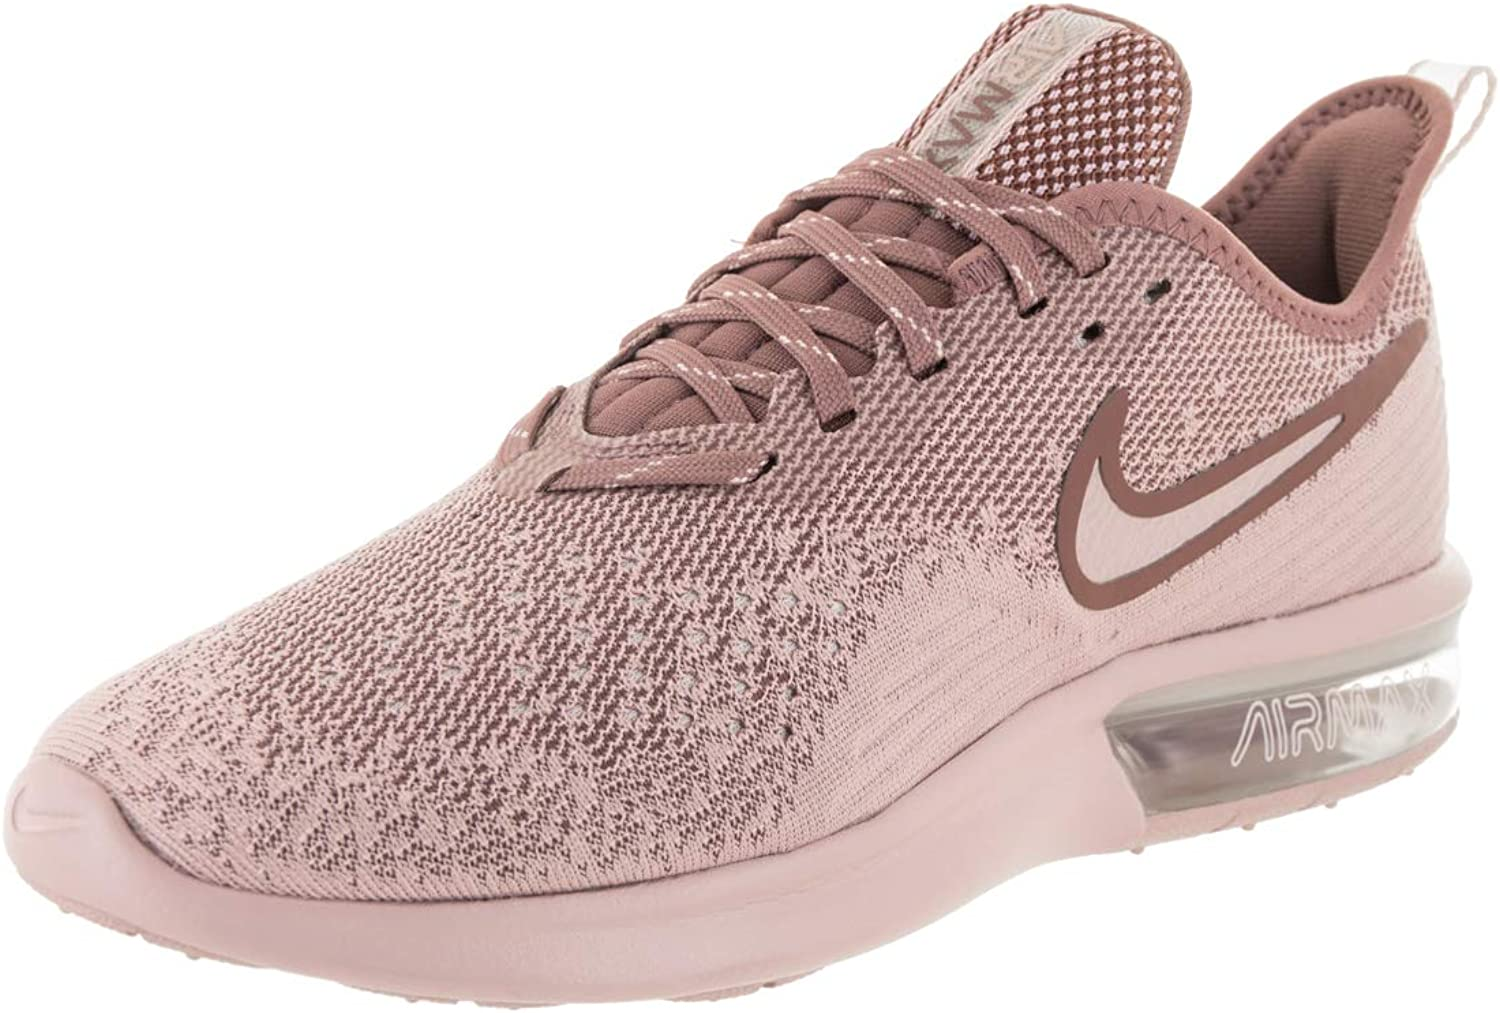 Nike Damen WMNS Air Max Sequent 4 Fitnessschuhe